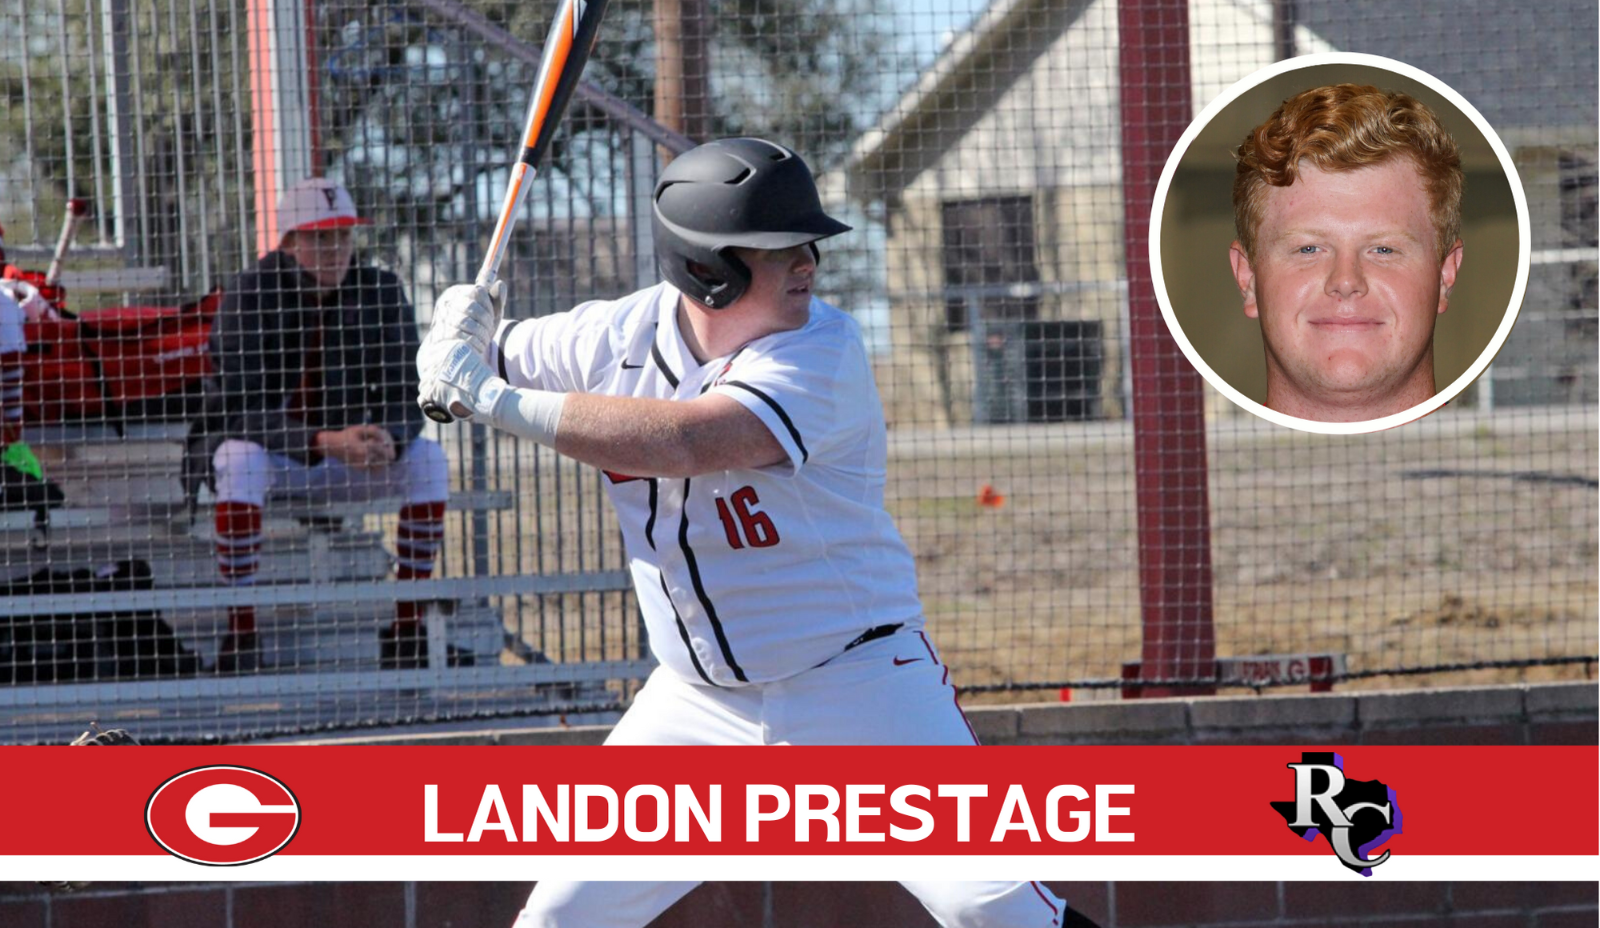 Landon Prestage Commits to Ranger College